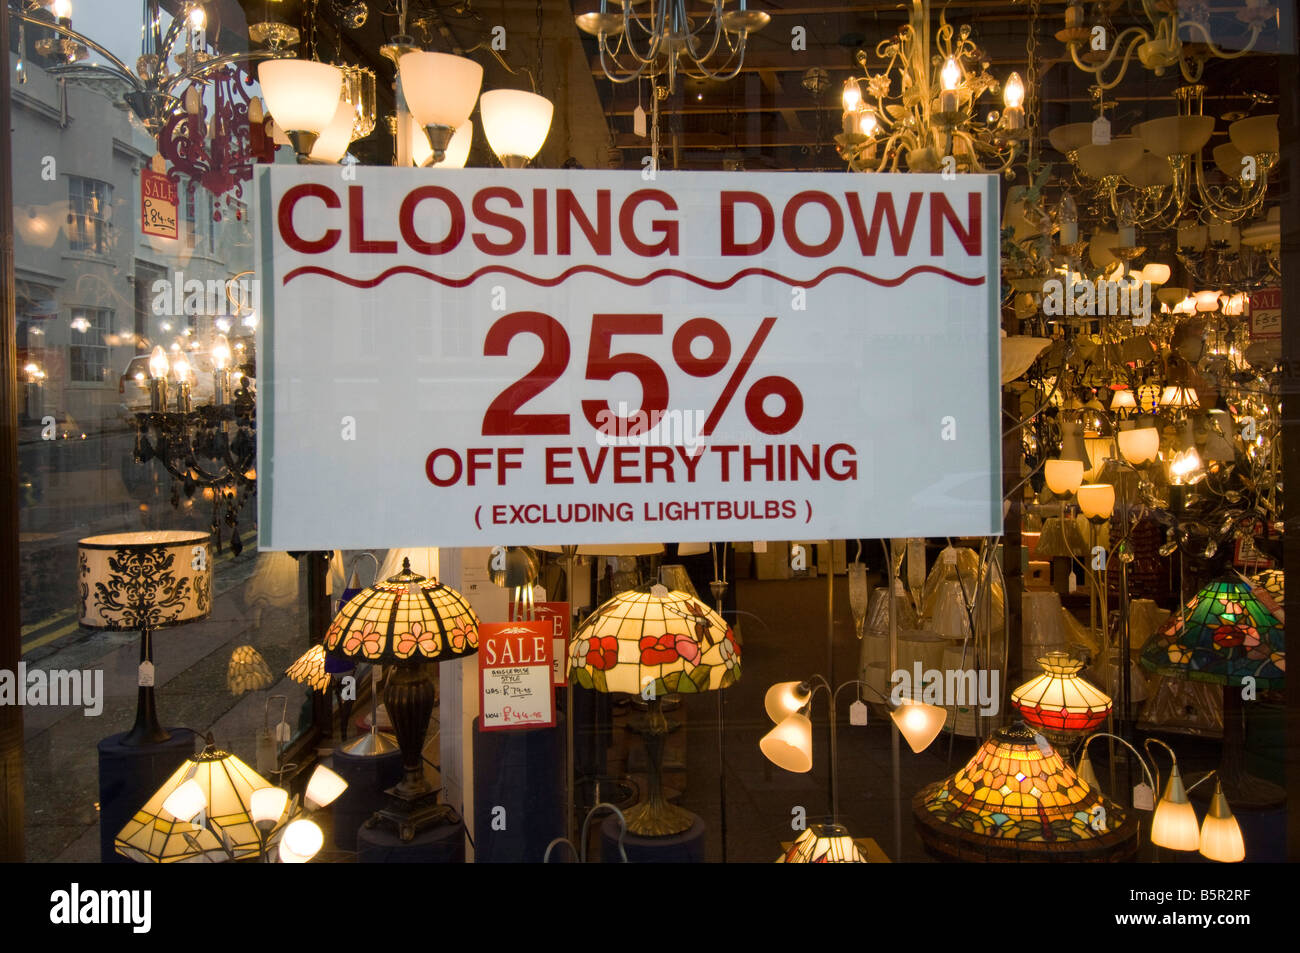 Closing Down sign offering 25 per cent at a lighting shop in Brighton but adding 'Excluding Lightbulbs' - Stock Image